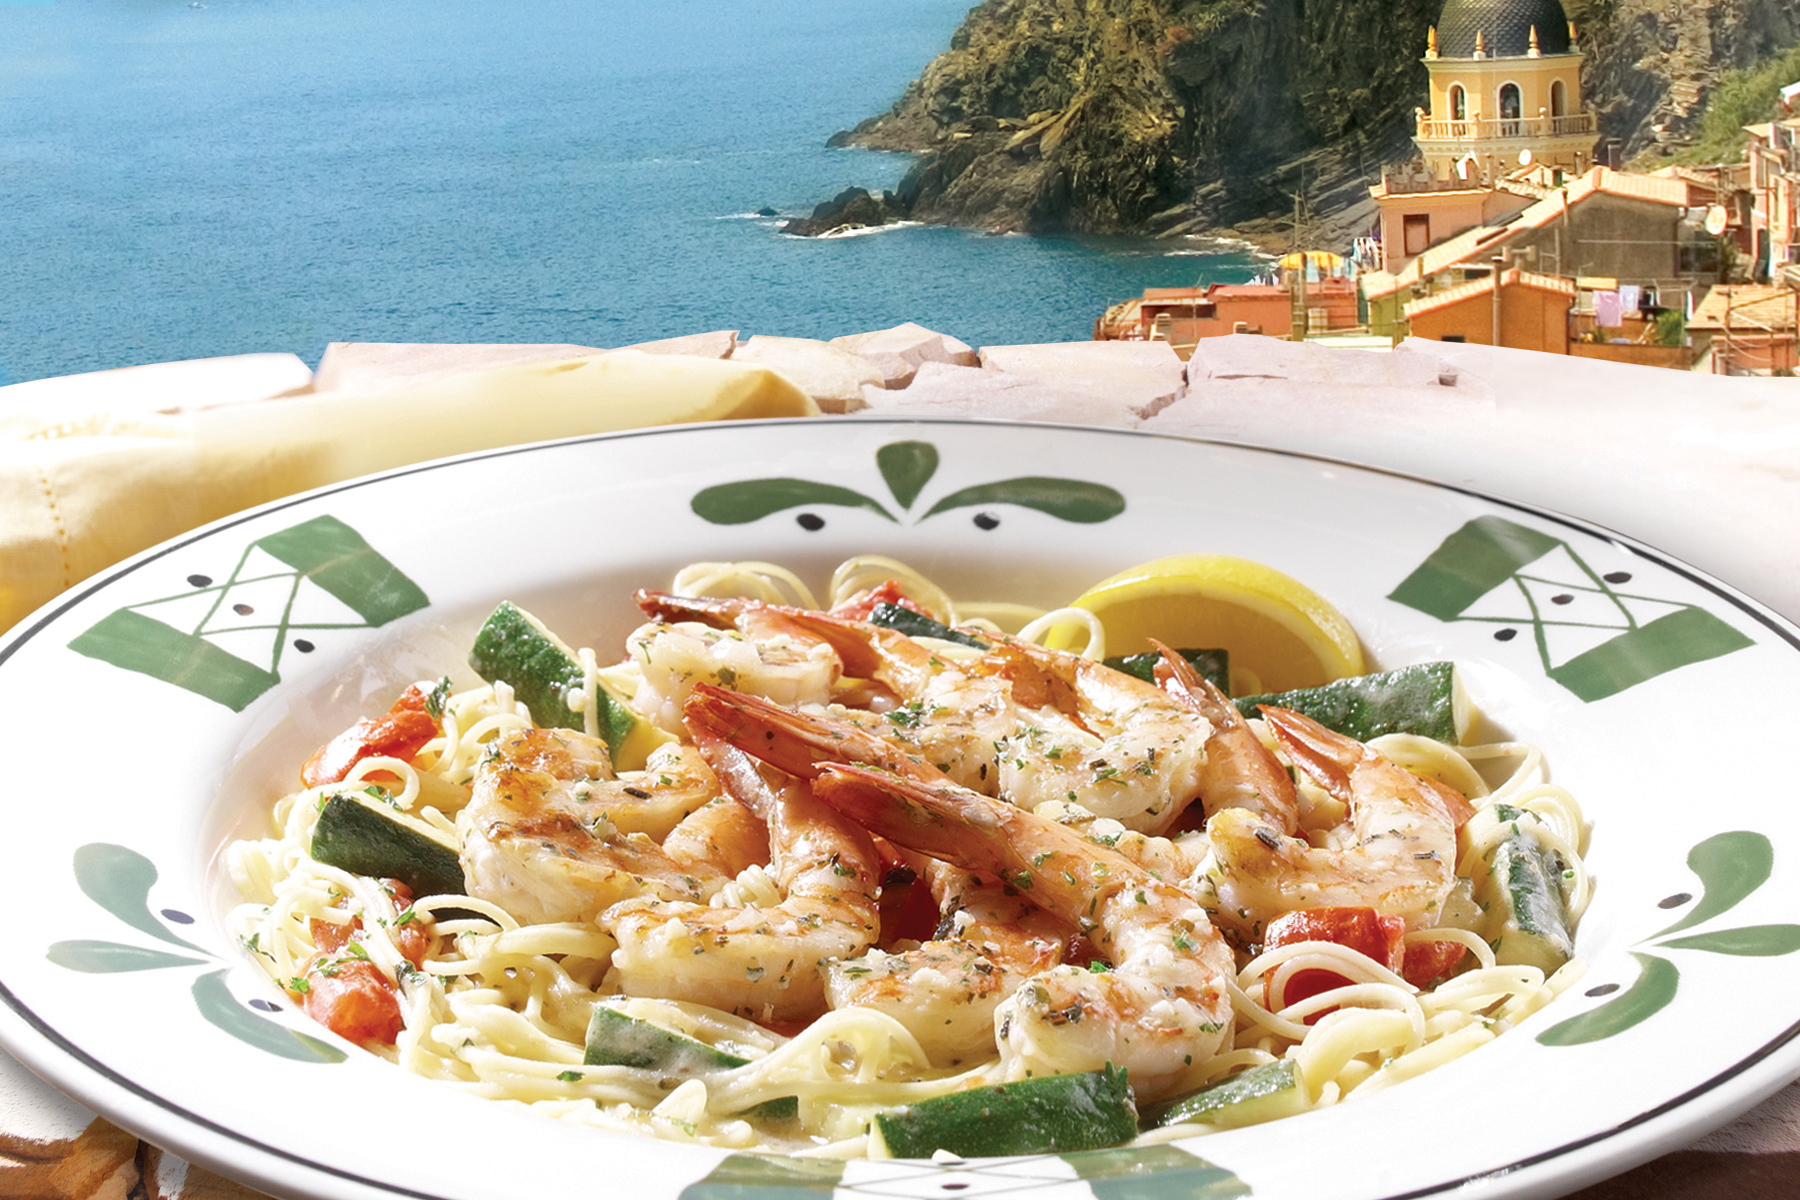 Olive Garden Menu Pdf: Olive Garden Grills Up Summertime Dishes